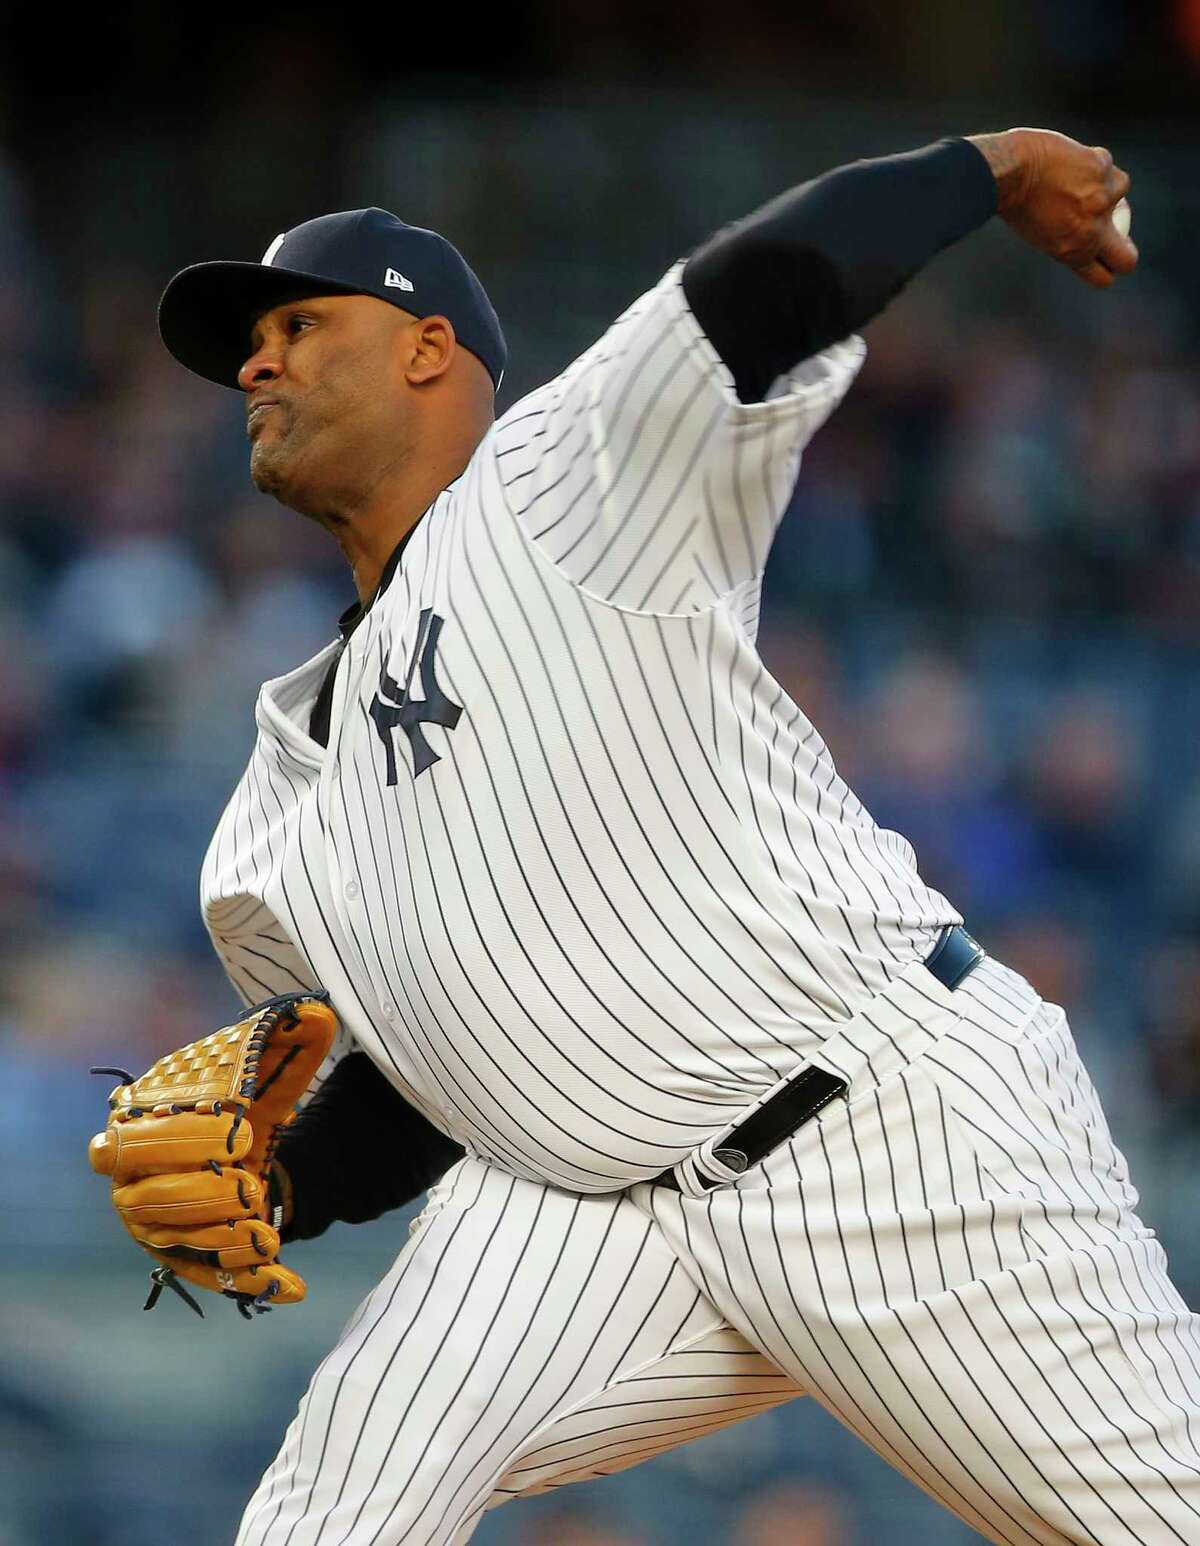 NEW YORK, NY - MAY 03: Pitcher CC Sabathia #52 of the New York Yankees delivers a pitch in the first inning against the Toronto Blue Jays during a game at Yankee Stadium on May 3, 2017 in the Bronx borough of New York City. (Photo by Rich Schultz/Getty Images) ORG XMIT: 700010634